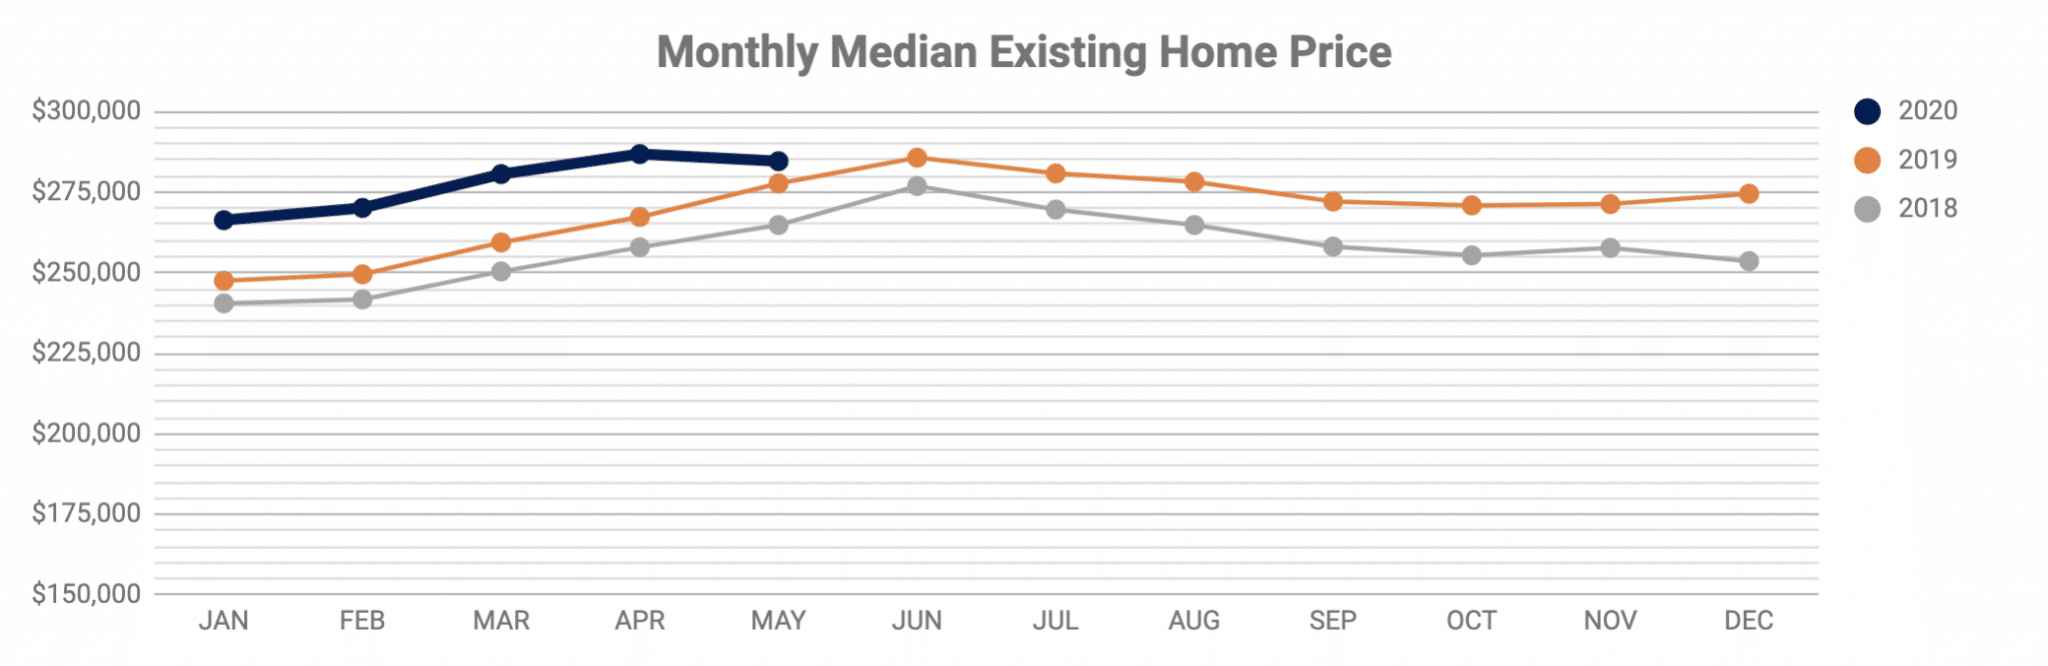 Monthly Median Existing Home Price thru May 2020